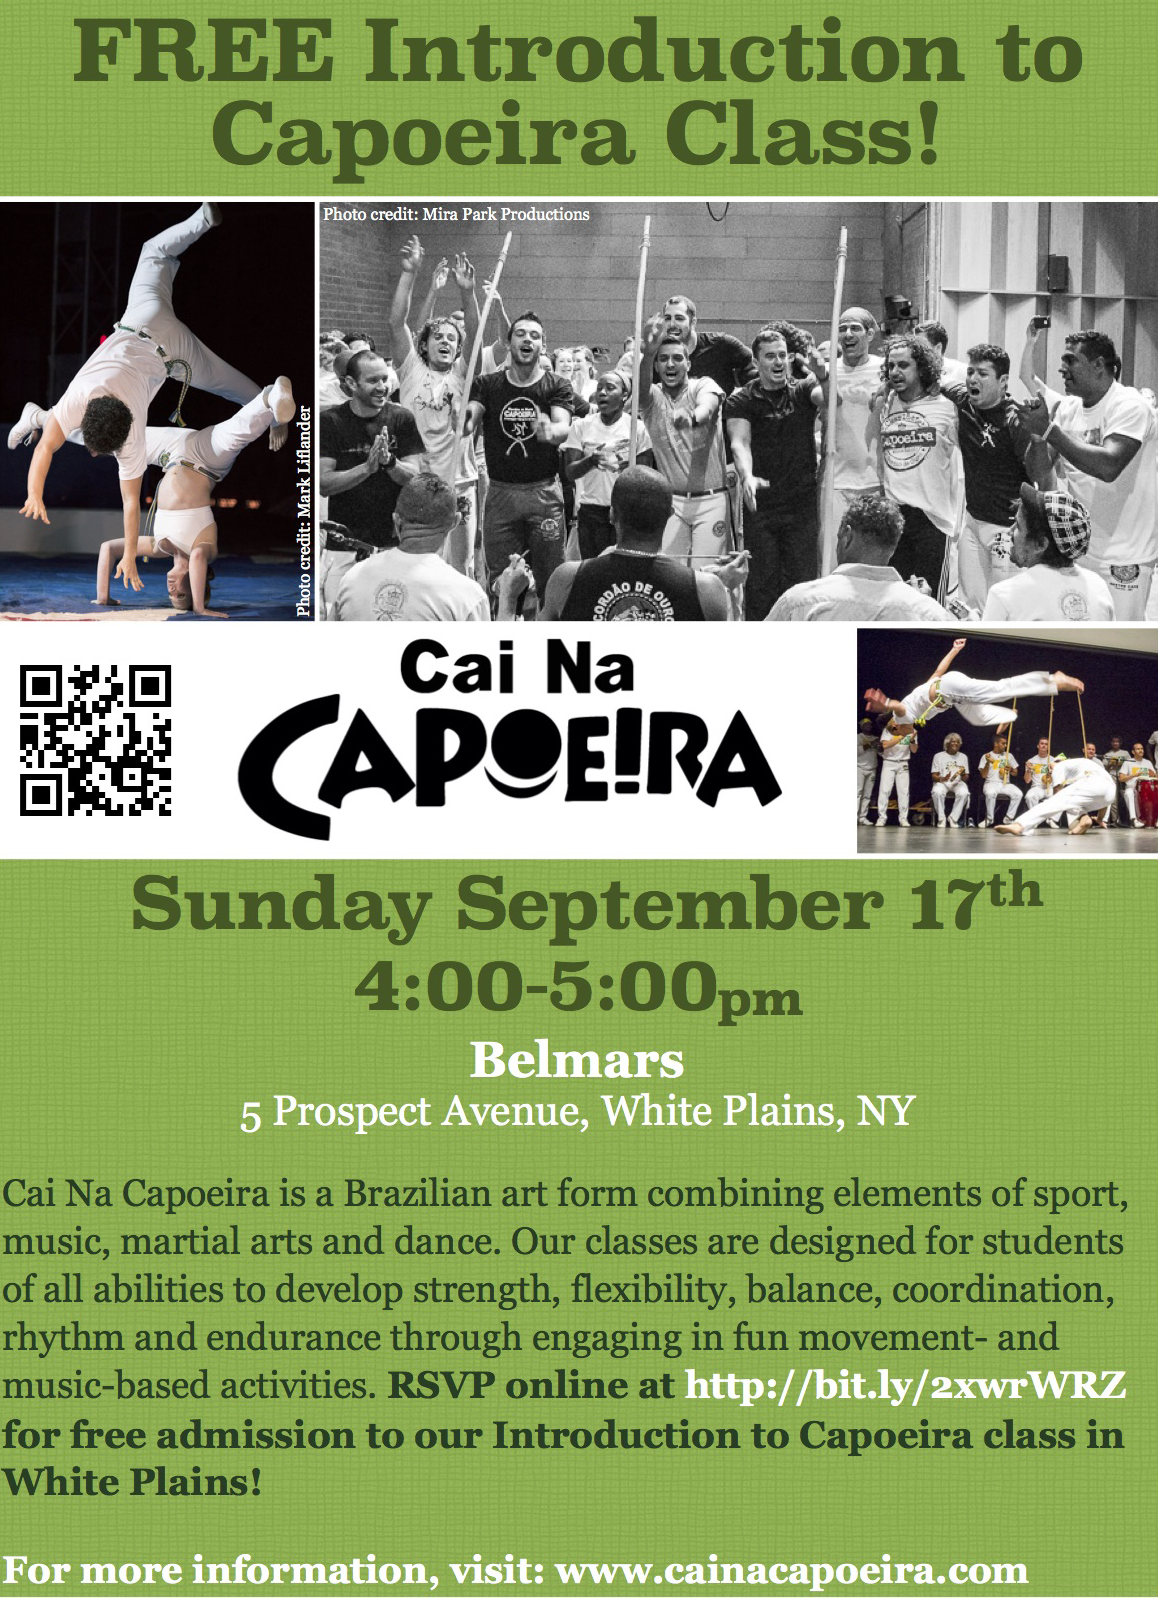 FREE Introduction Capoeira Class